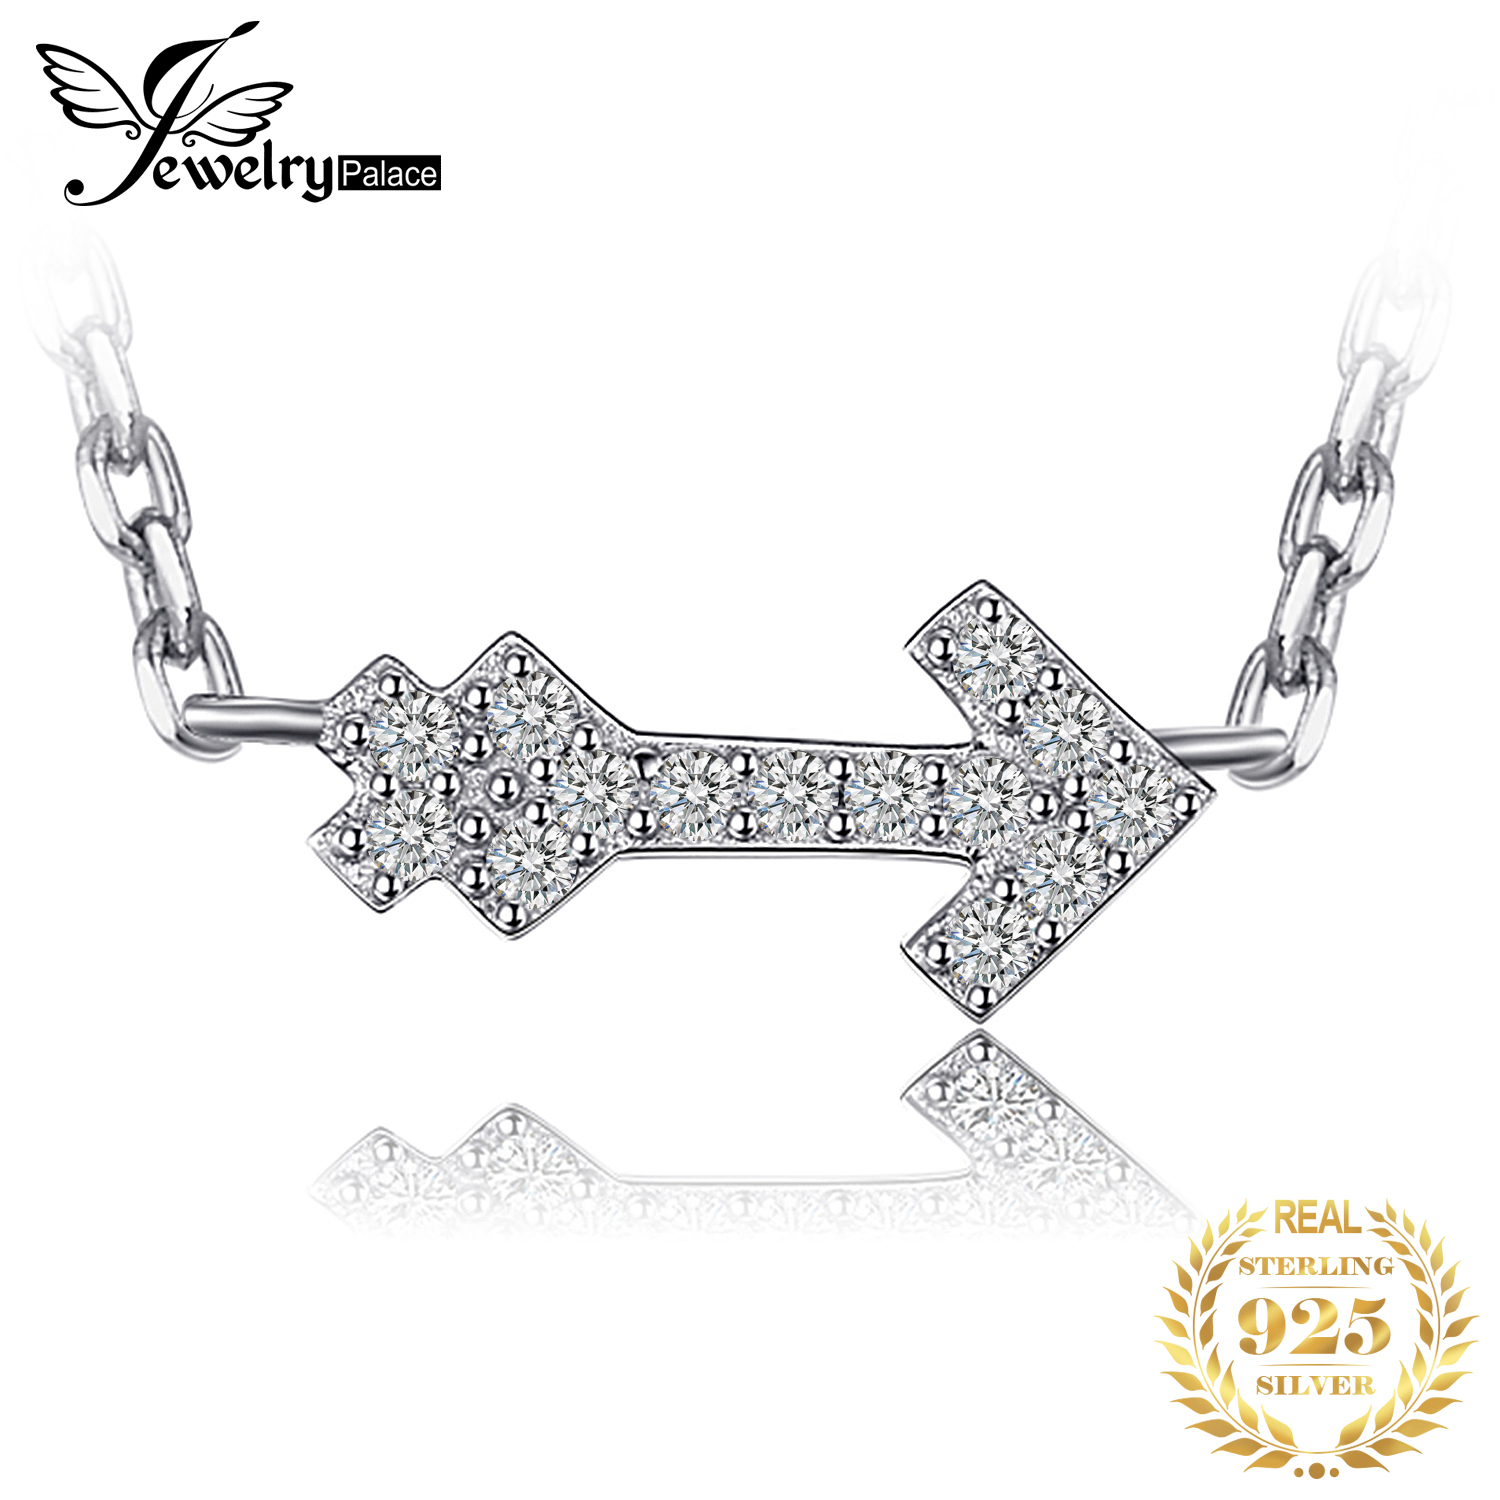 JewelryPalace Love Arrow Round Necklace Pure 925 Sterling Silver 45cm Jewelry For Women Love Gift For Friend Gift For Women